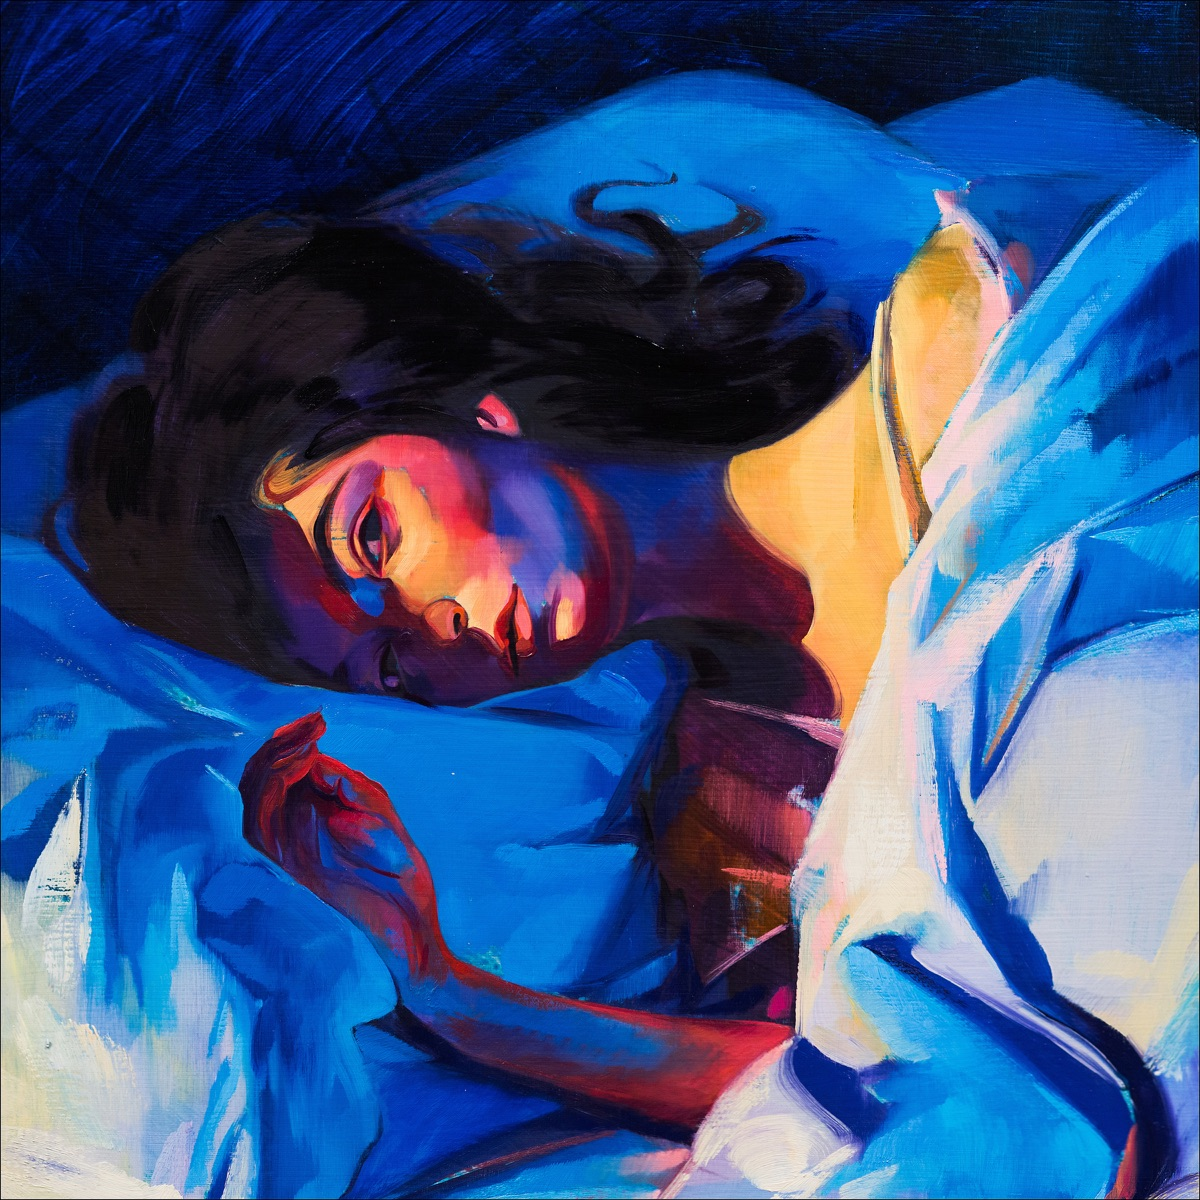 Melodrama Lorde CD cover